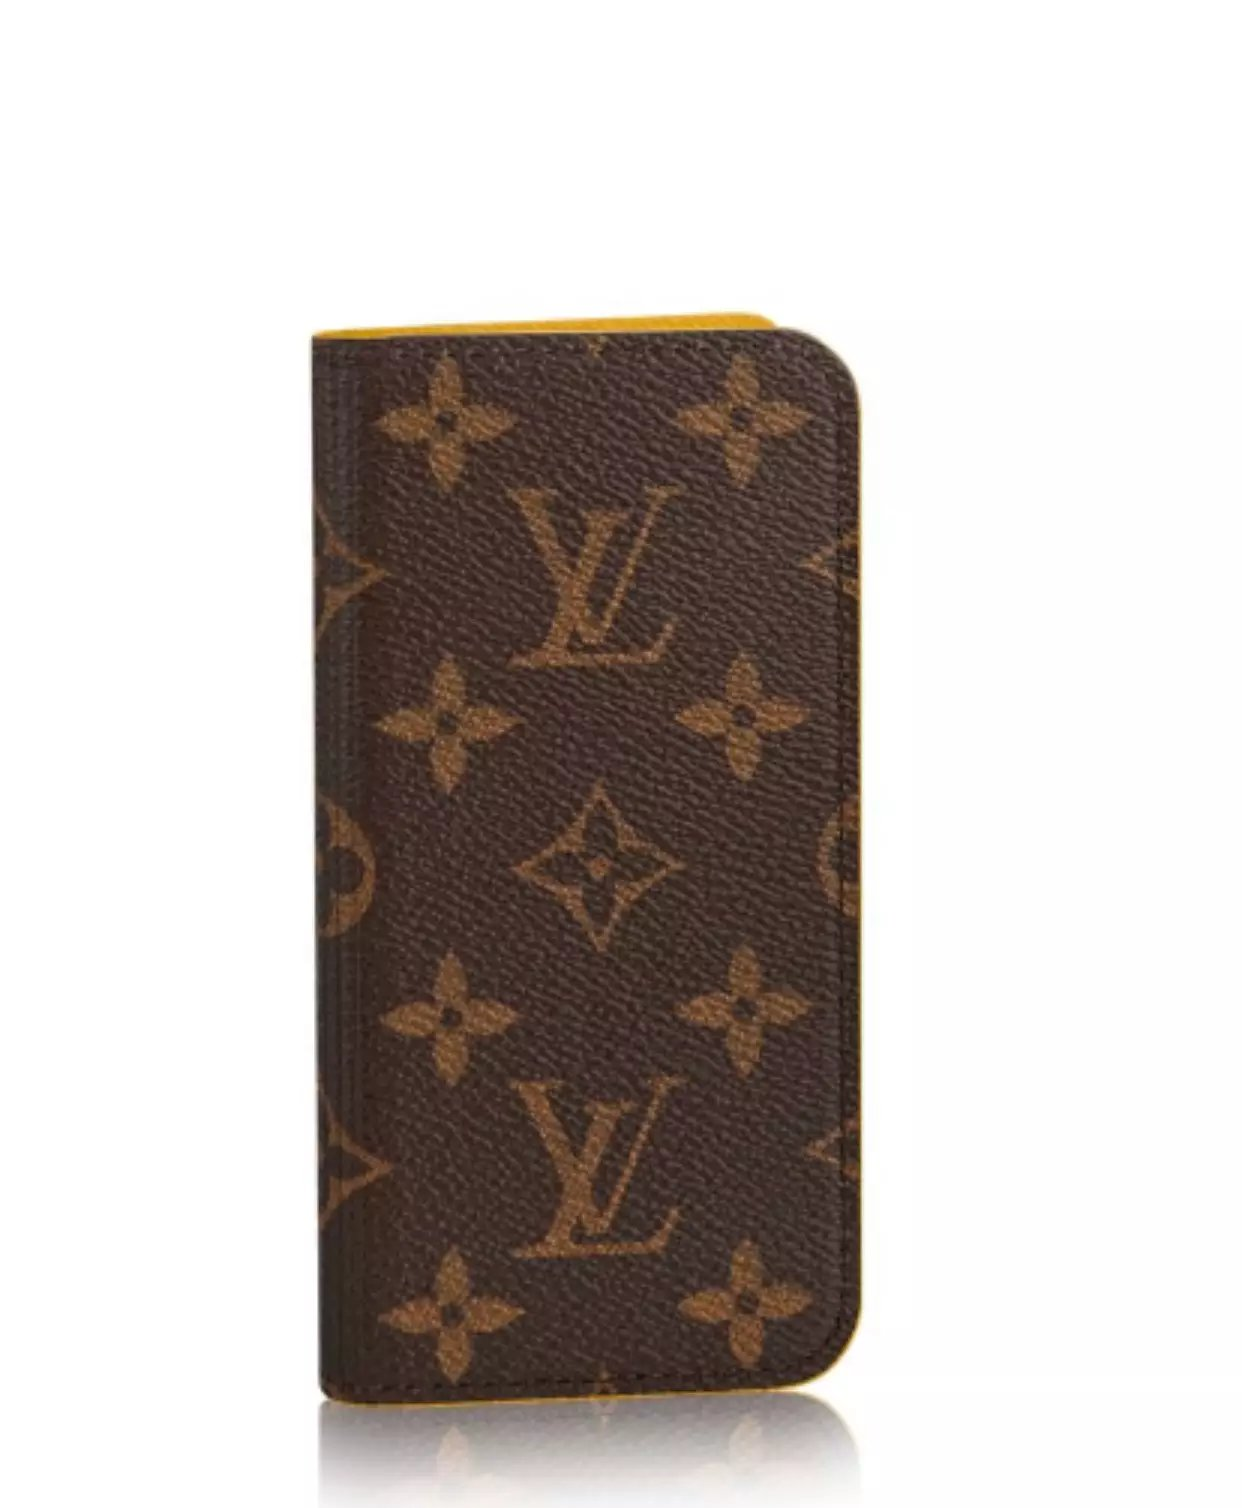 iphone handyhülle filzhülle iphone Louis Vuitton iphone 8 hüllen handyhülle leder der neue iphone 8 was8rdichte hülle iphone 8 8lbstgemachte handyhüllen ledertasche für iphone 8 was8rdichte iphone hülle